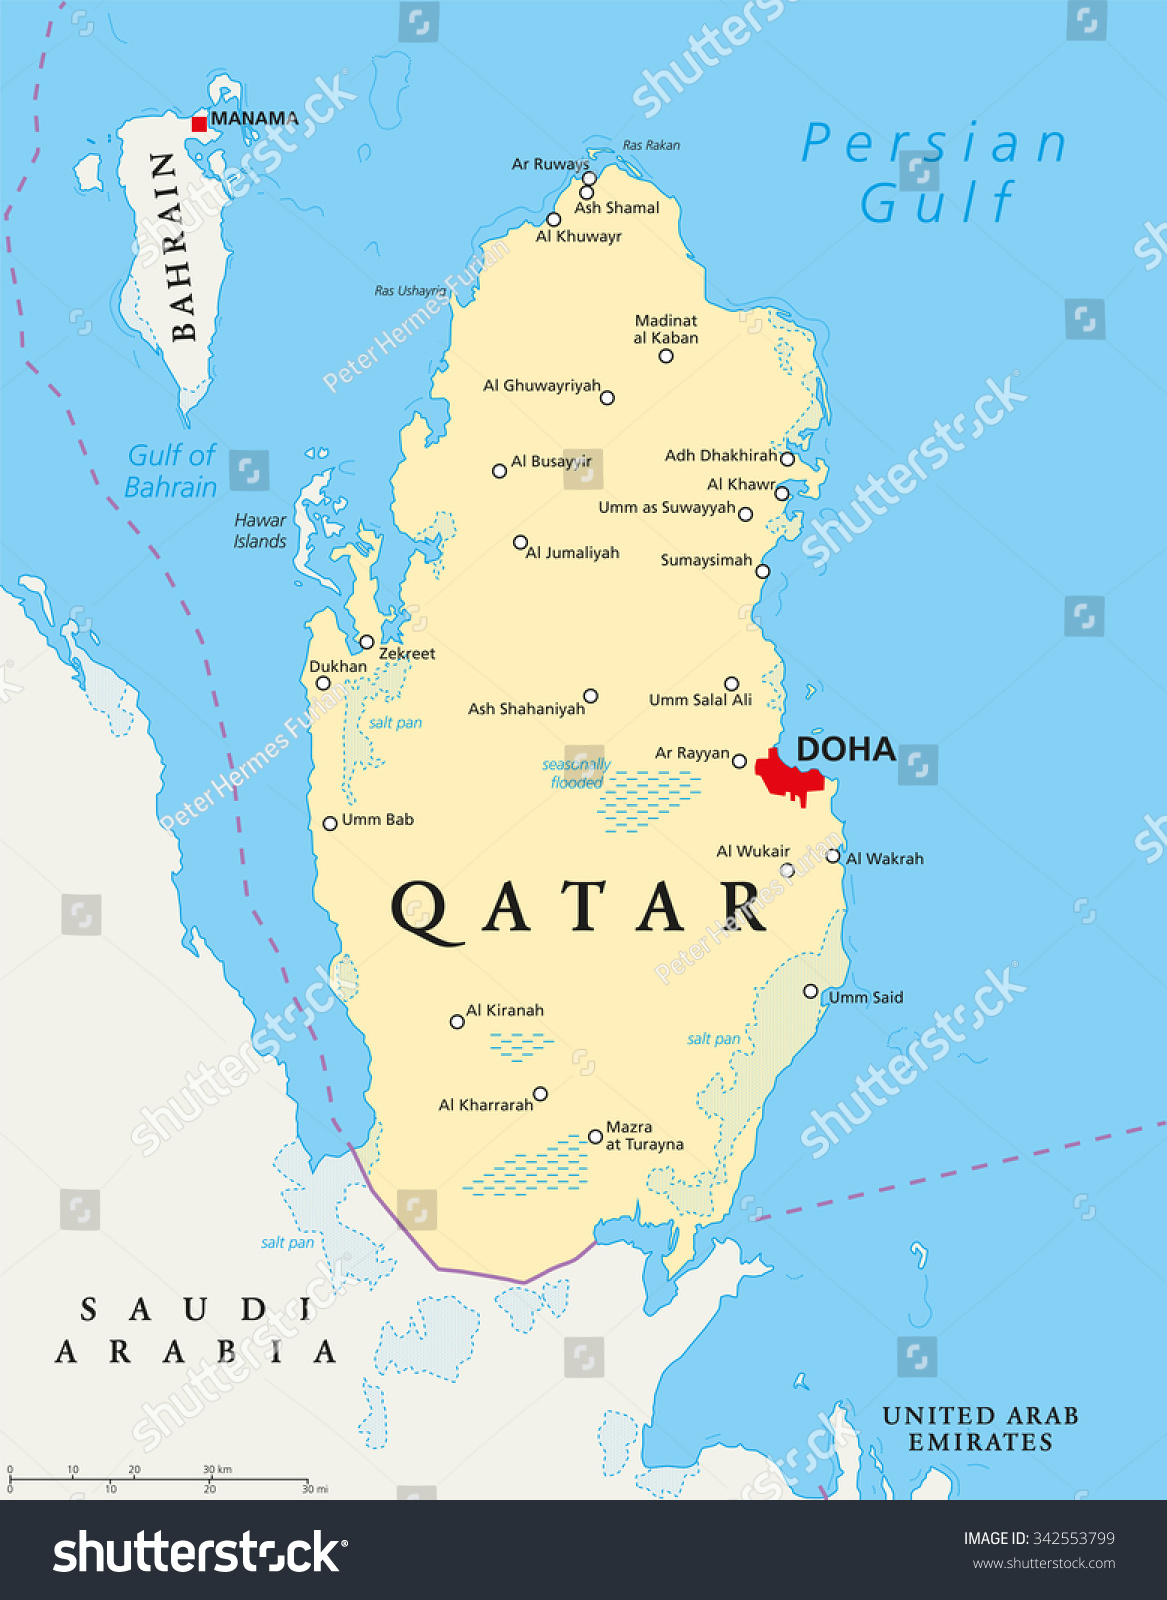 Qatar political map with capital Doha, national borders, important cities, salt pans and reefs. English labeling and scaling. Illustration.        - Vector